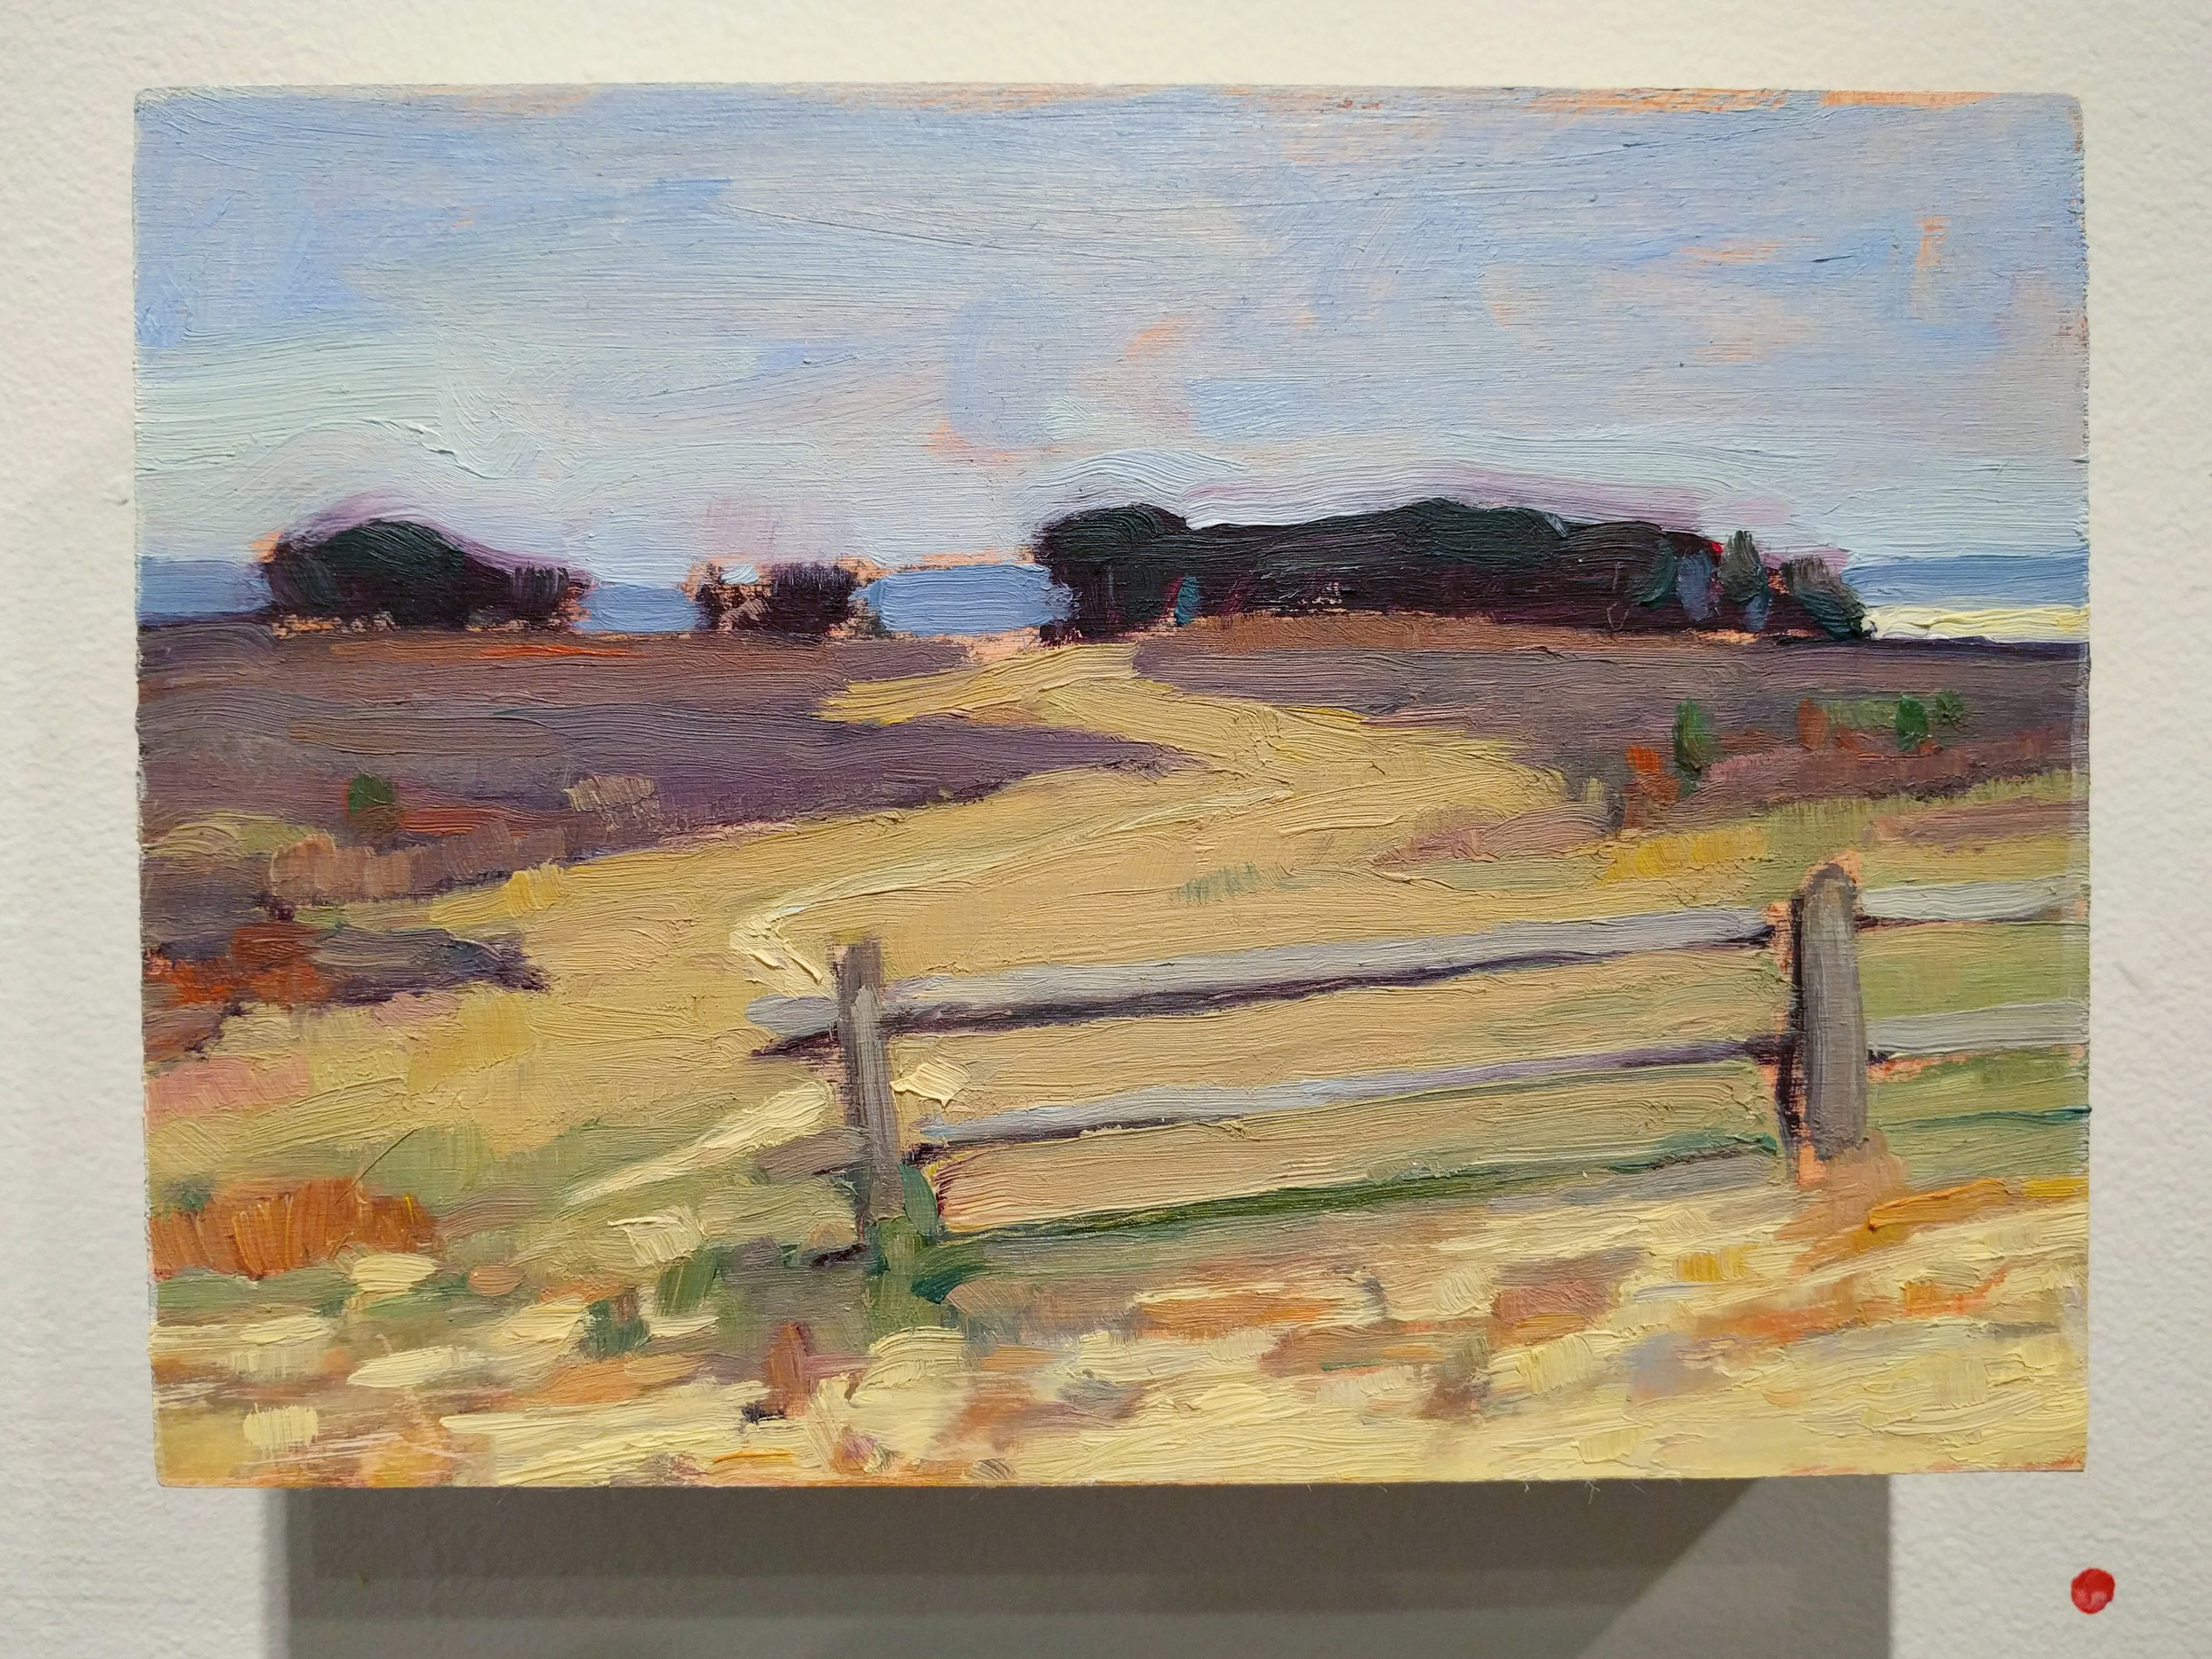 """Stephanie Reiter """"The Road Less Traveled"""" 2016 oil on board, 5 x 7 in."""